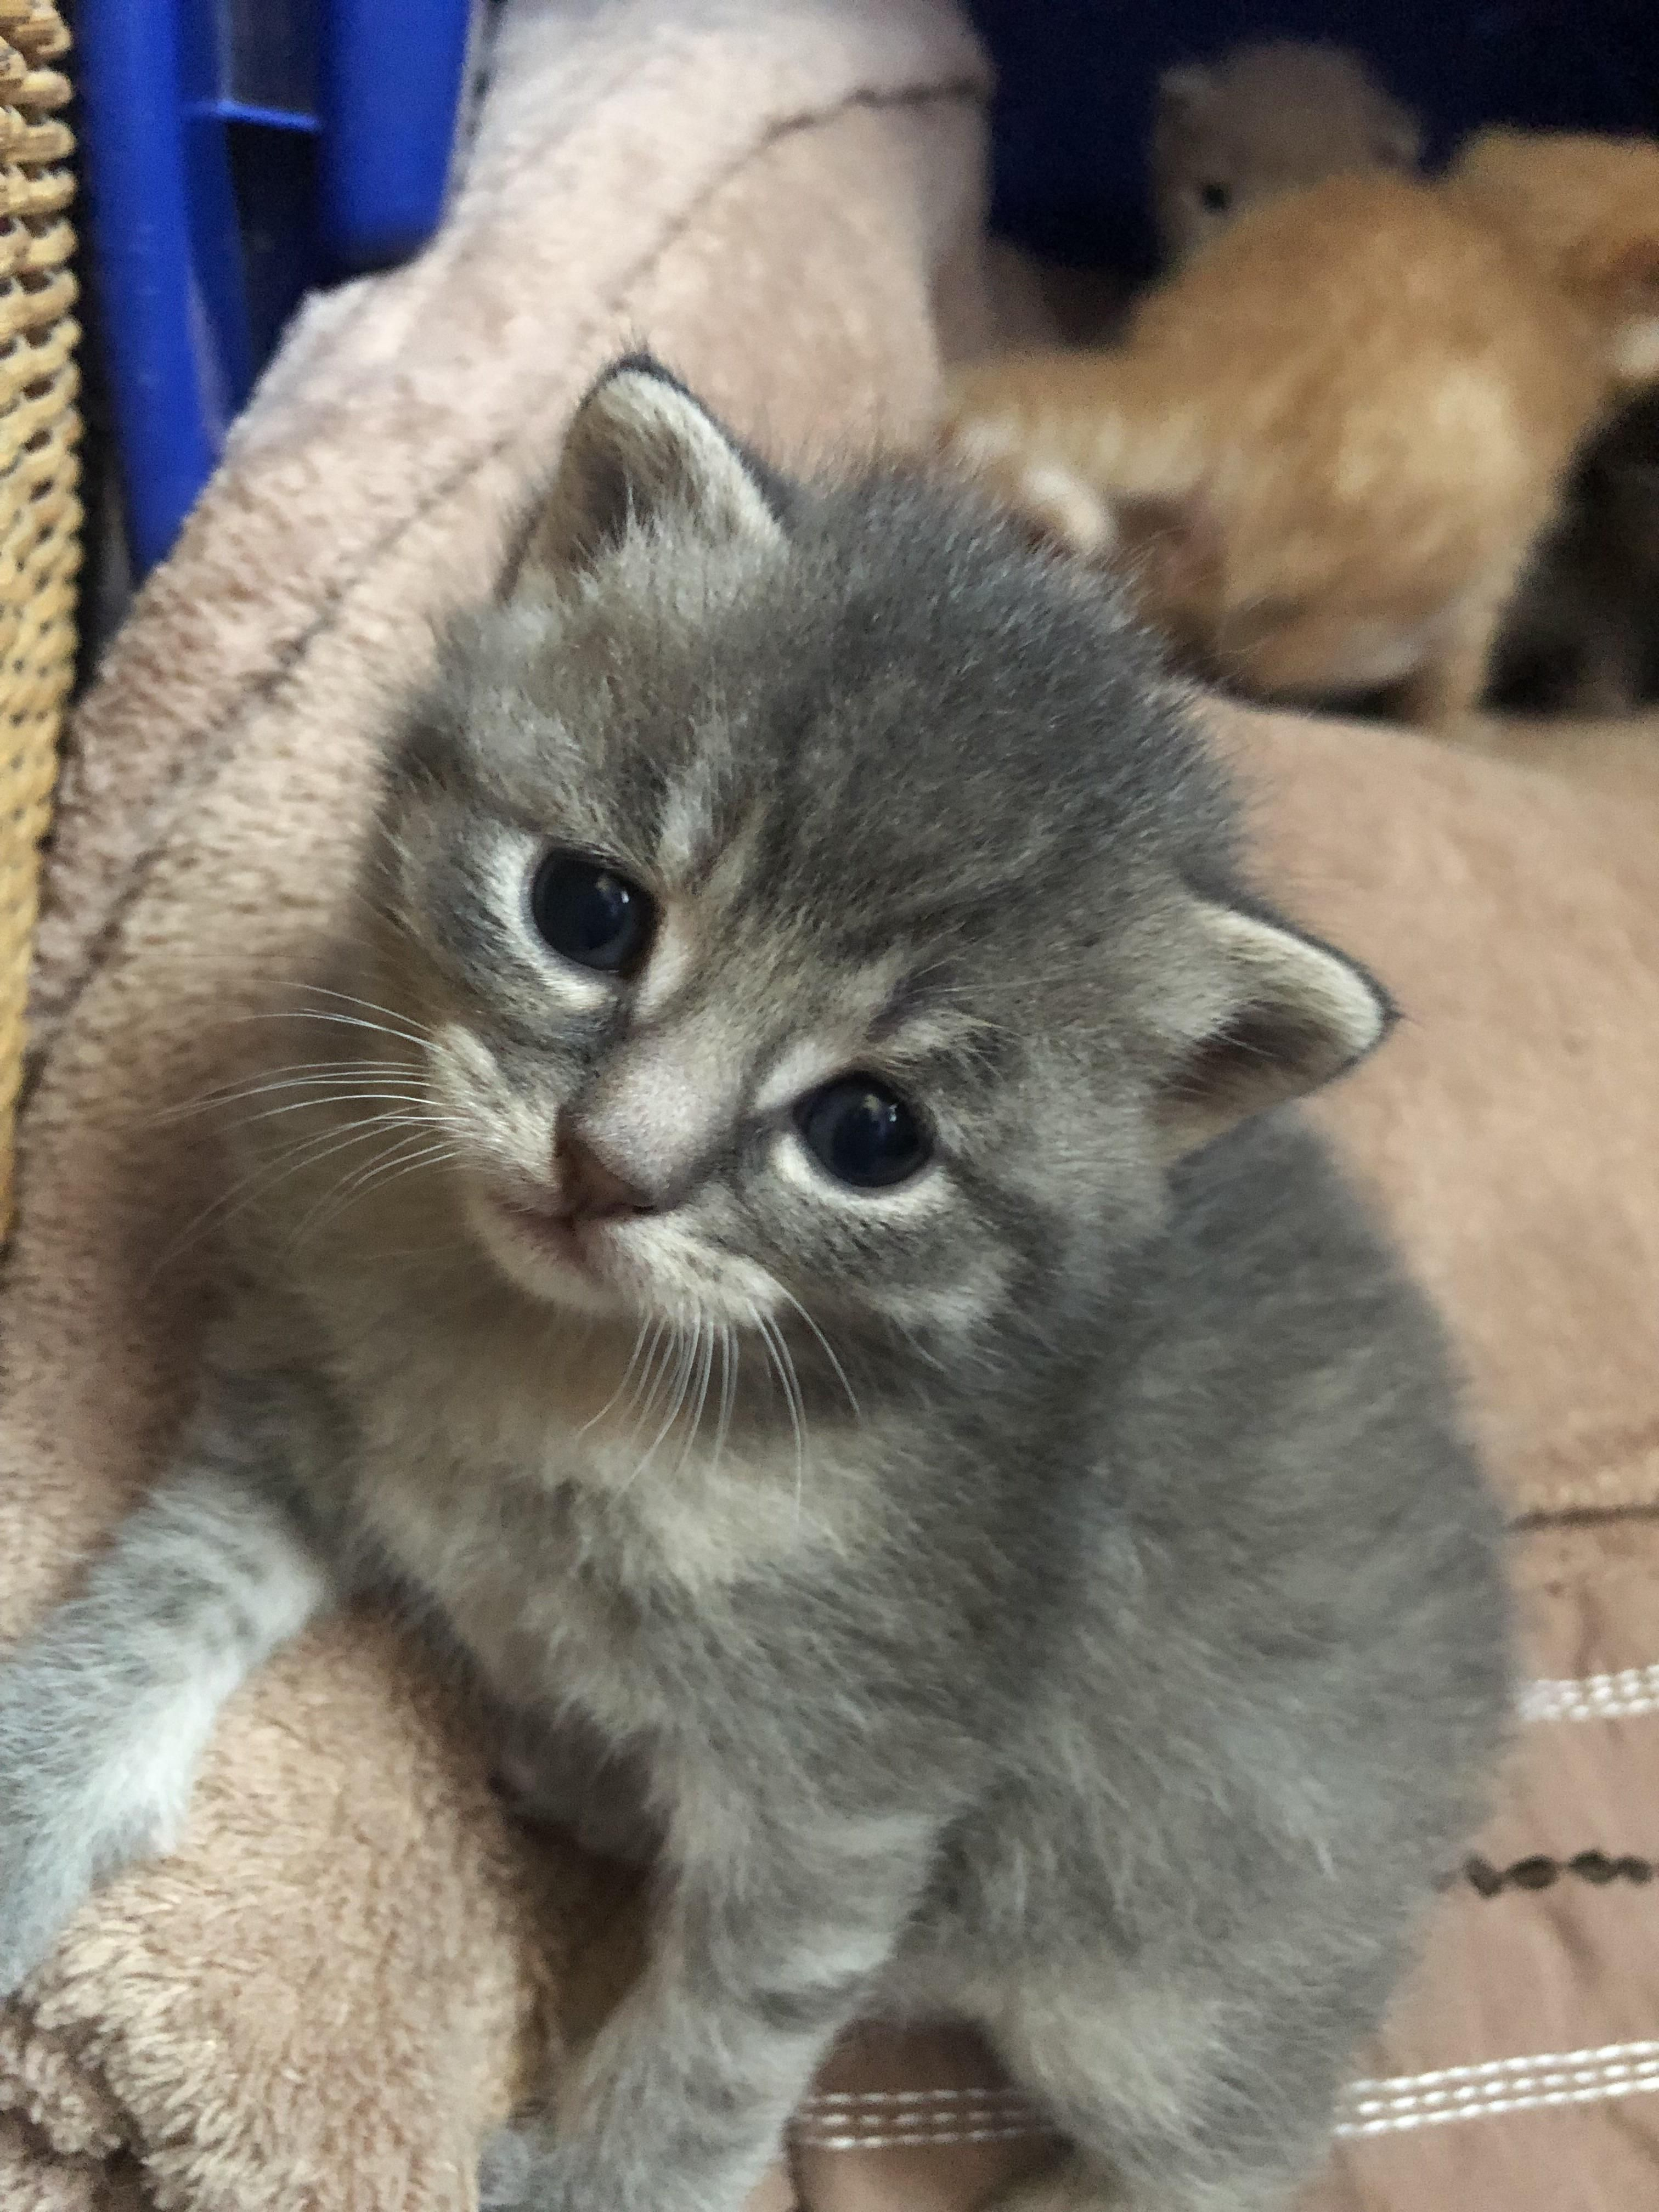 Update On The Kittens They Are Starting To Walk Around And They Have All Opened There Eyeshttps I Redd It 8woaad Kittens Animal Rescue Shelters Animal Rescue